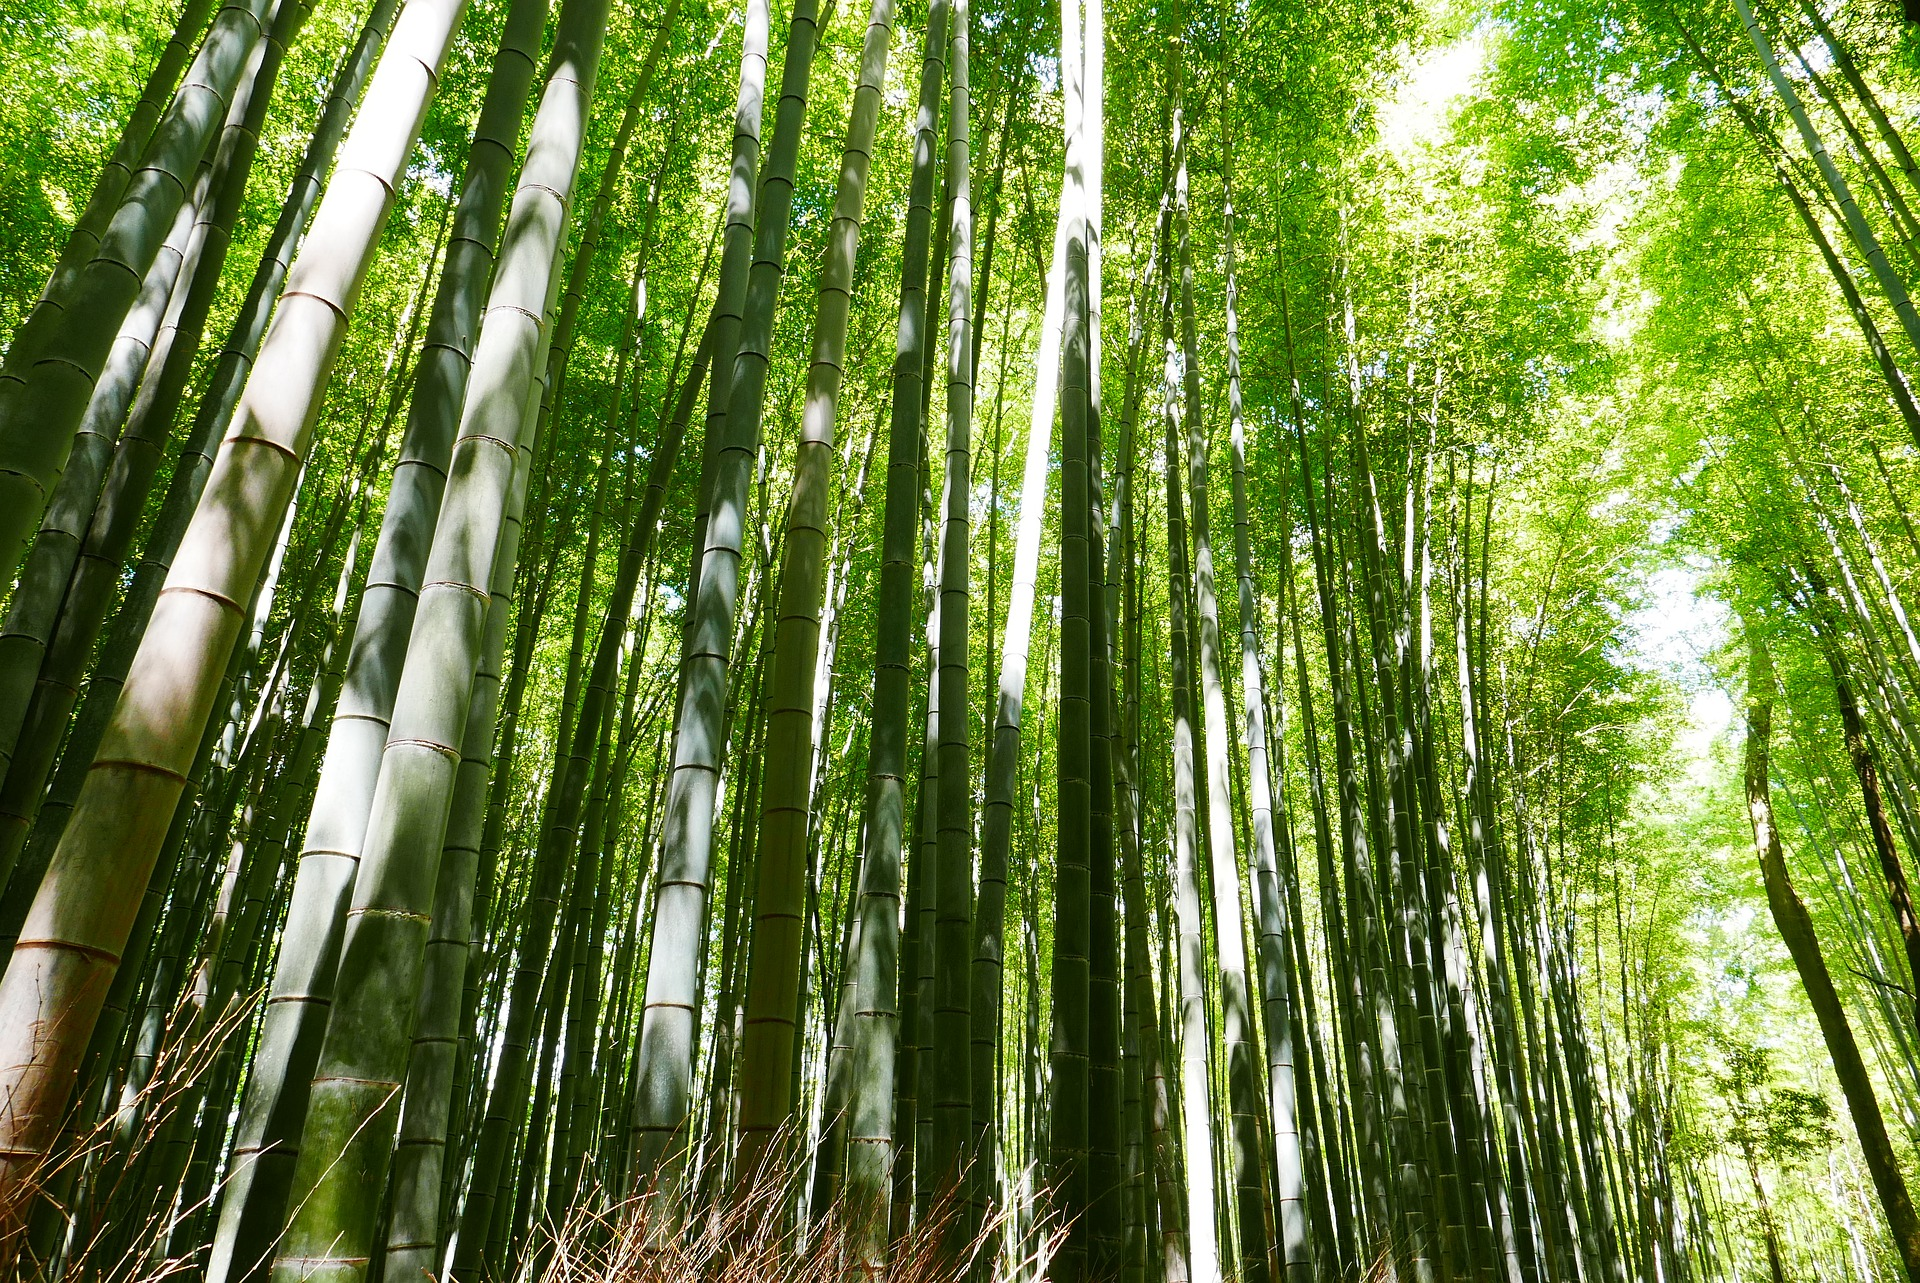 Bamboo - is a raw material of natural origin, has long been used by man in everyday life. More than two centuries ago it was used for the construction of houses, bridges, boats, home paraphernalia, musical instruments. In eastern medicine, the plant was used as a sedative and cosmetic 3